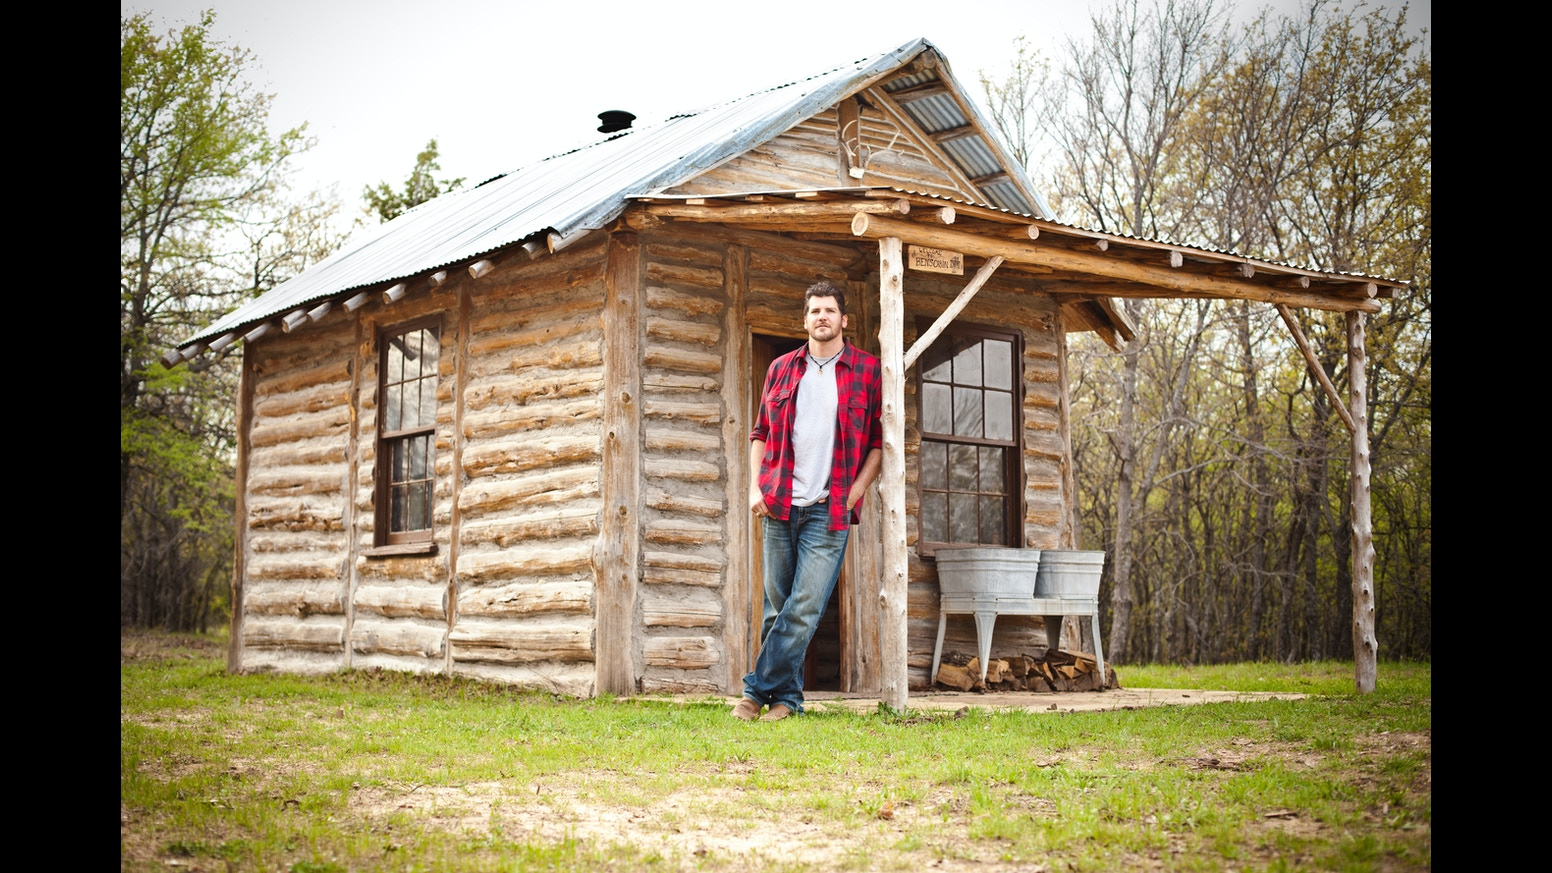 Amazing photo of just completed a life long dream building a log cabin. Now help  with #889635 color and 1552x873 pixels